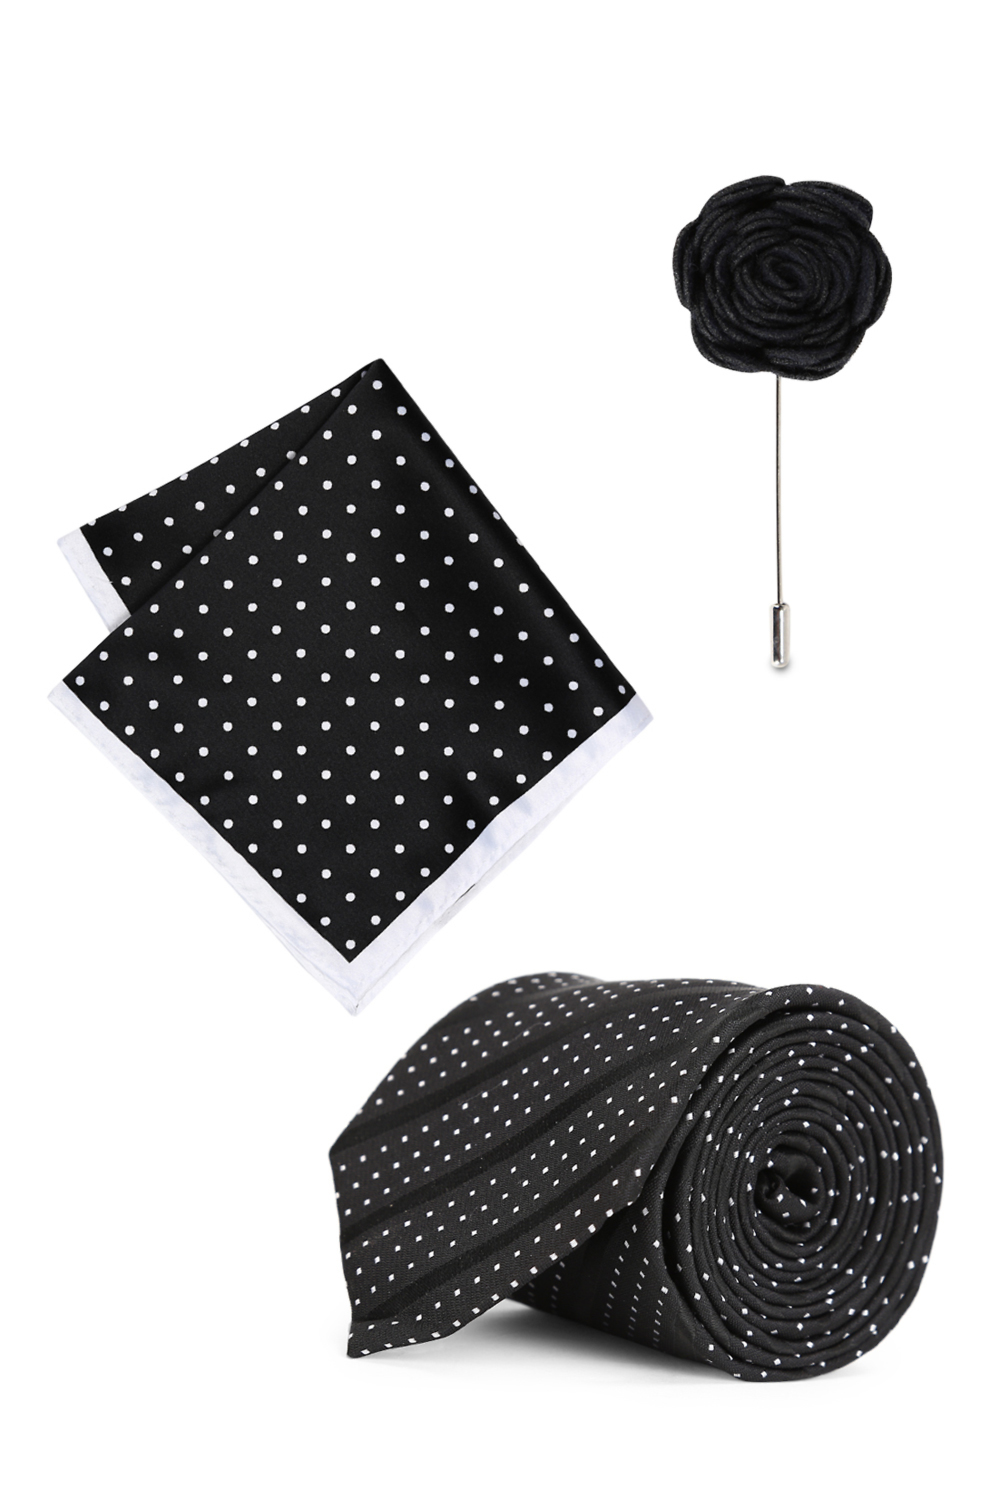 a1bdad54c0a9 Peter England Accessories, Peter England Black Pocket Square Tie And Lapel  Pin for Men at Peterengland.com